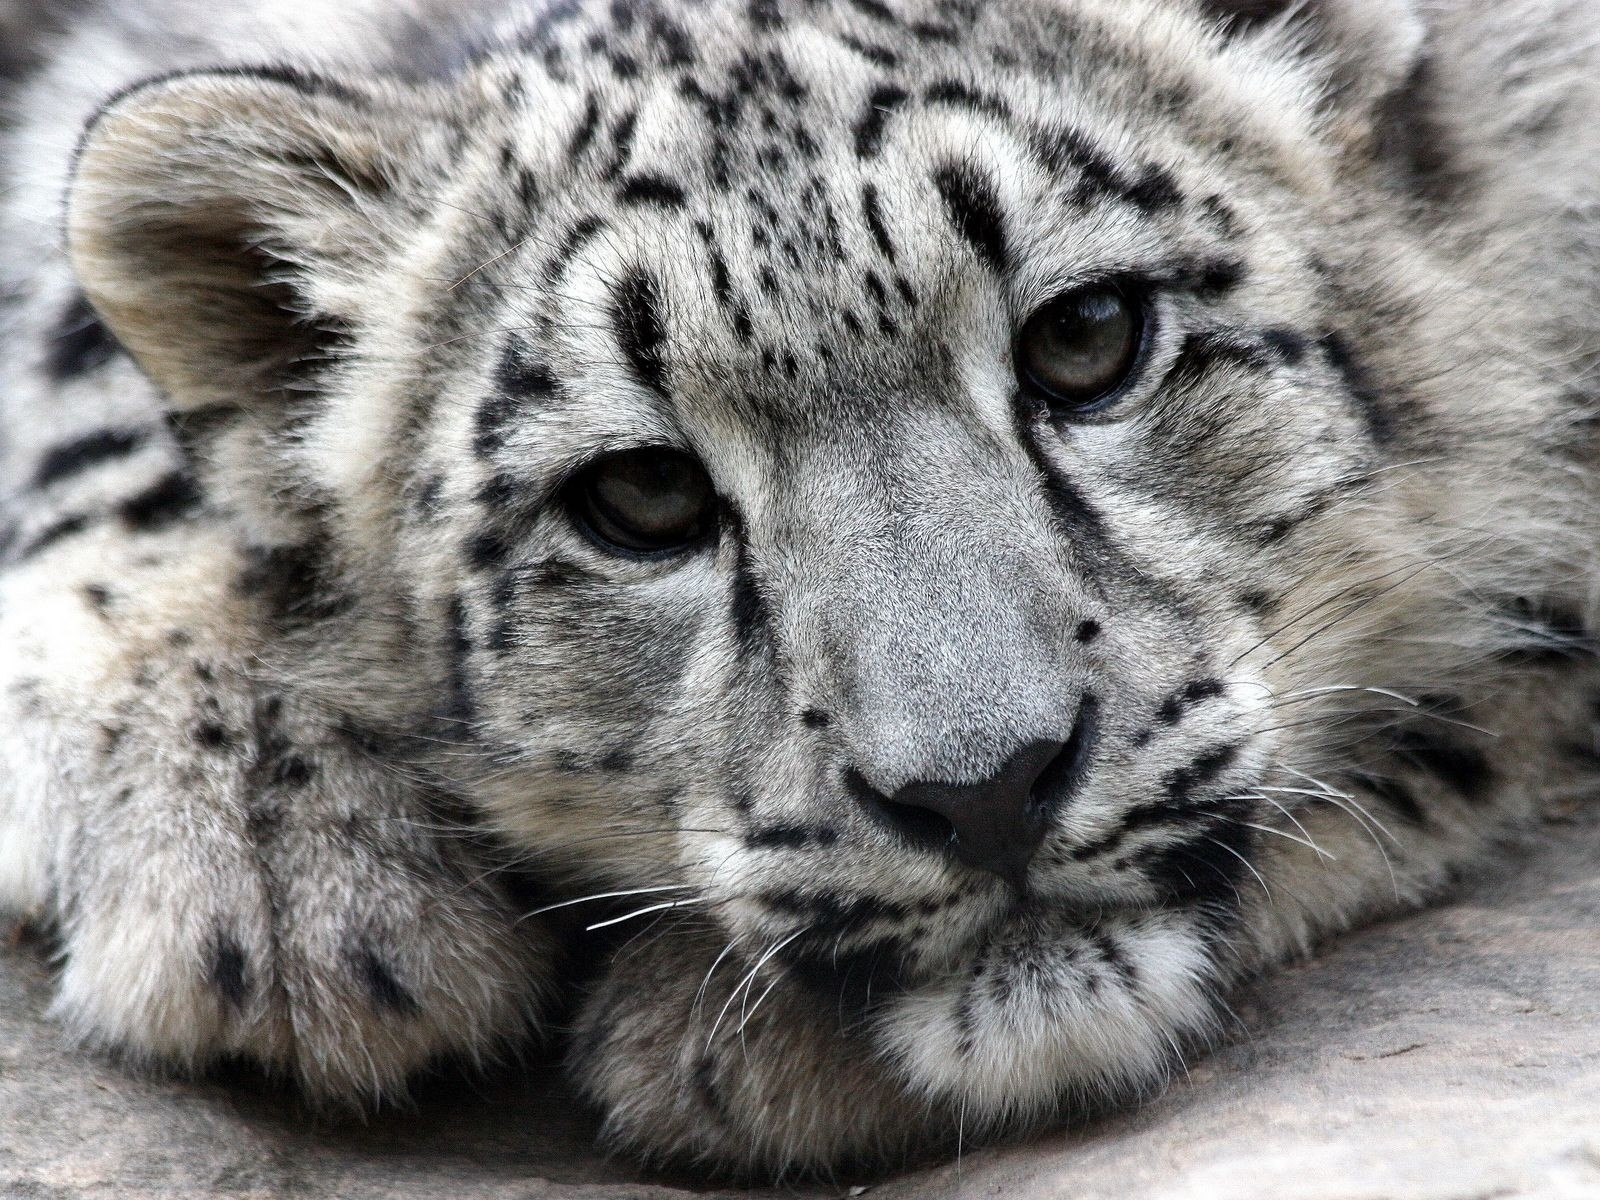 Snow leopard face side - photo#14